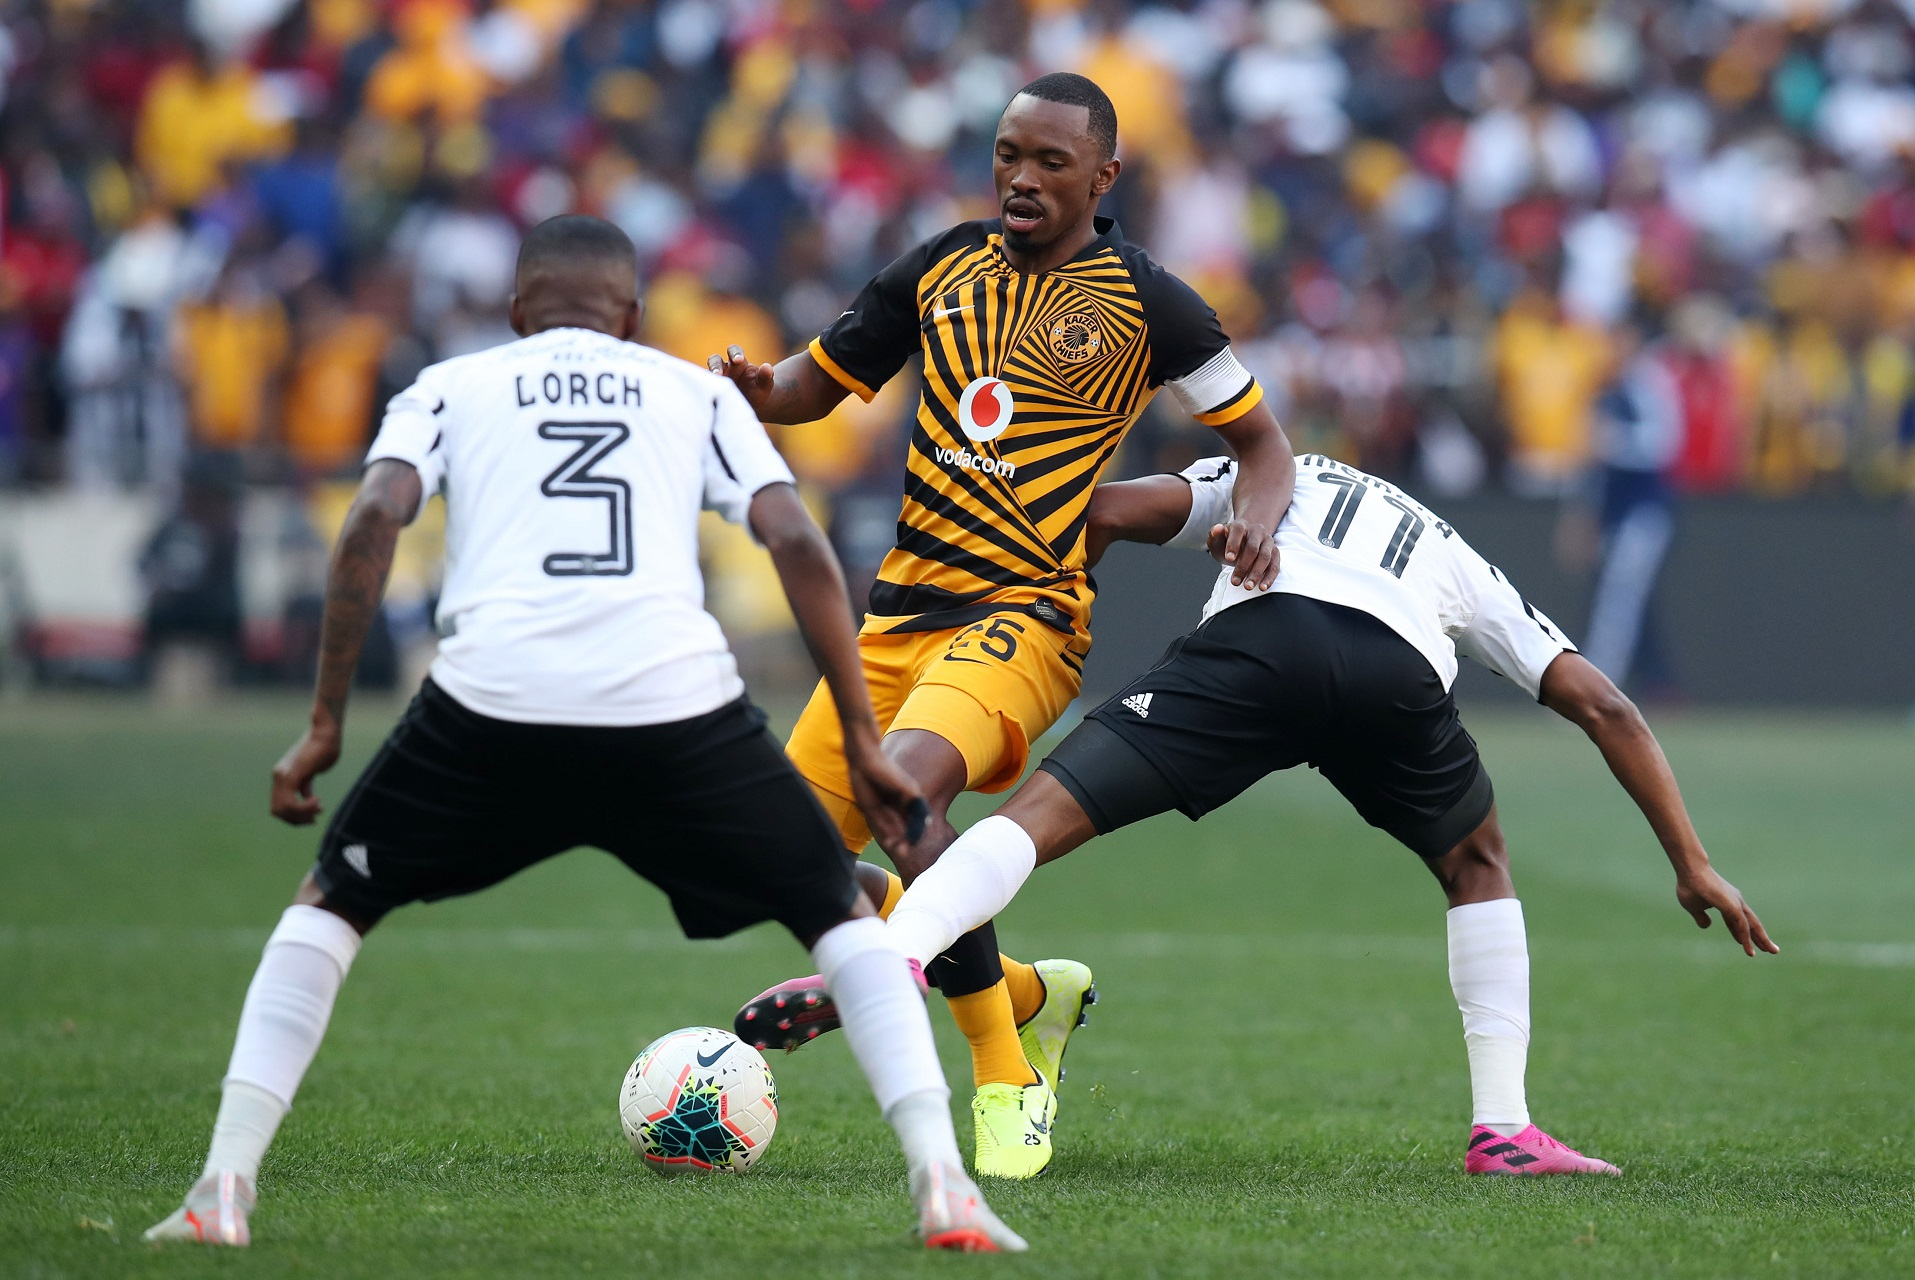 Soweto Derby Fever Kicks Off Early As Tickets Go On Sale photo